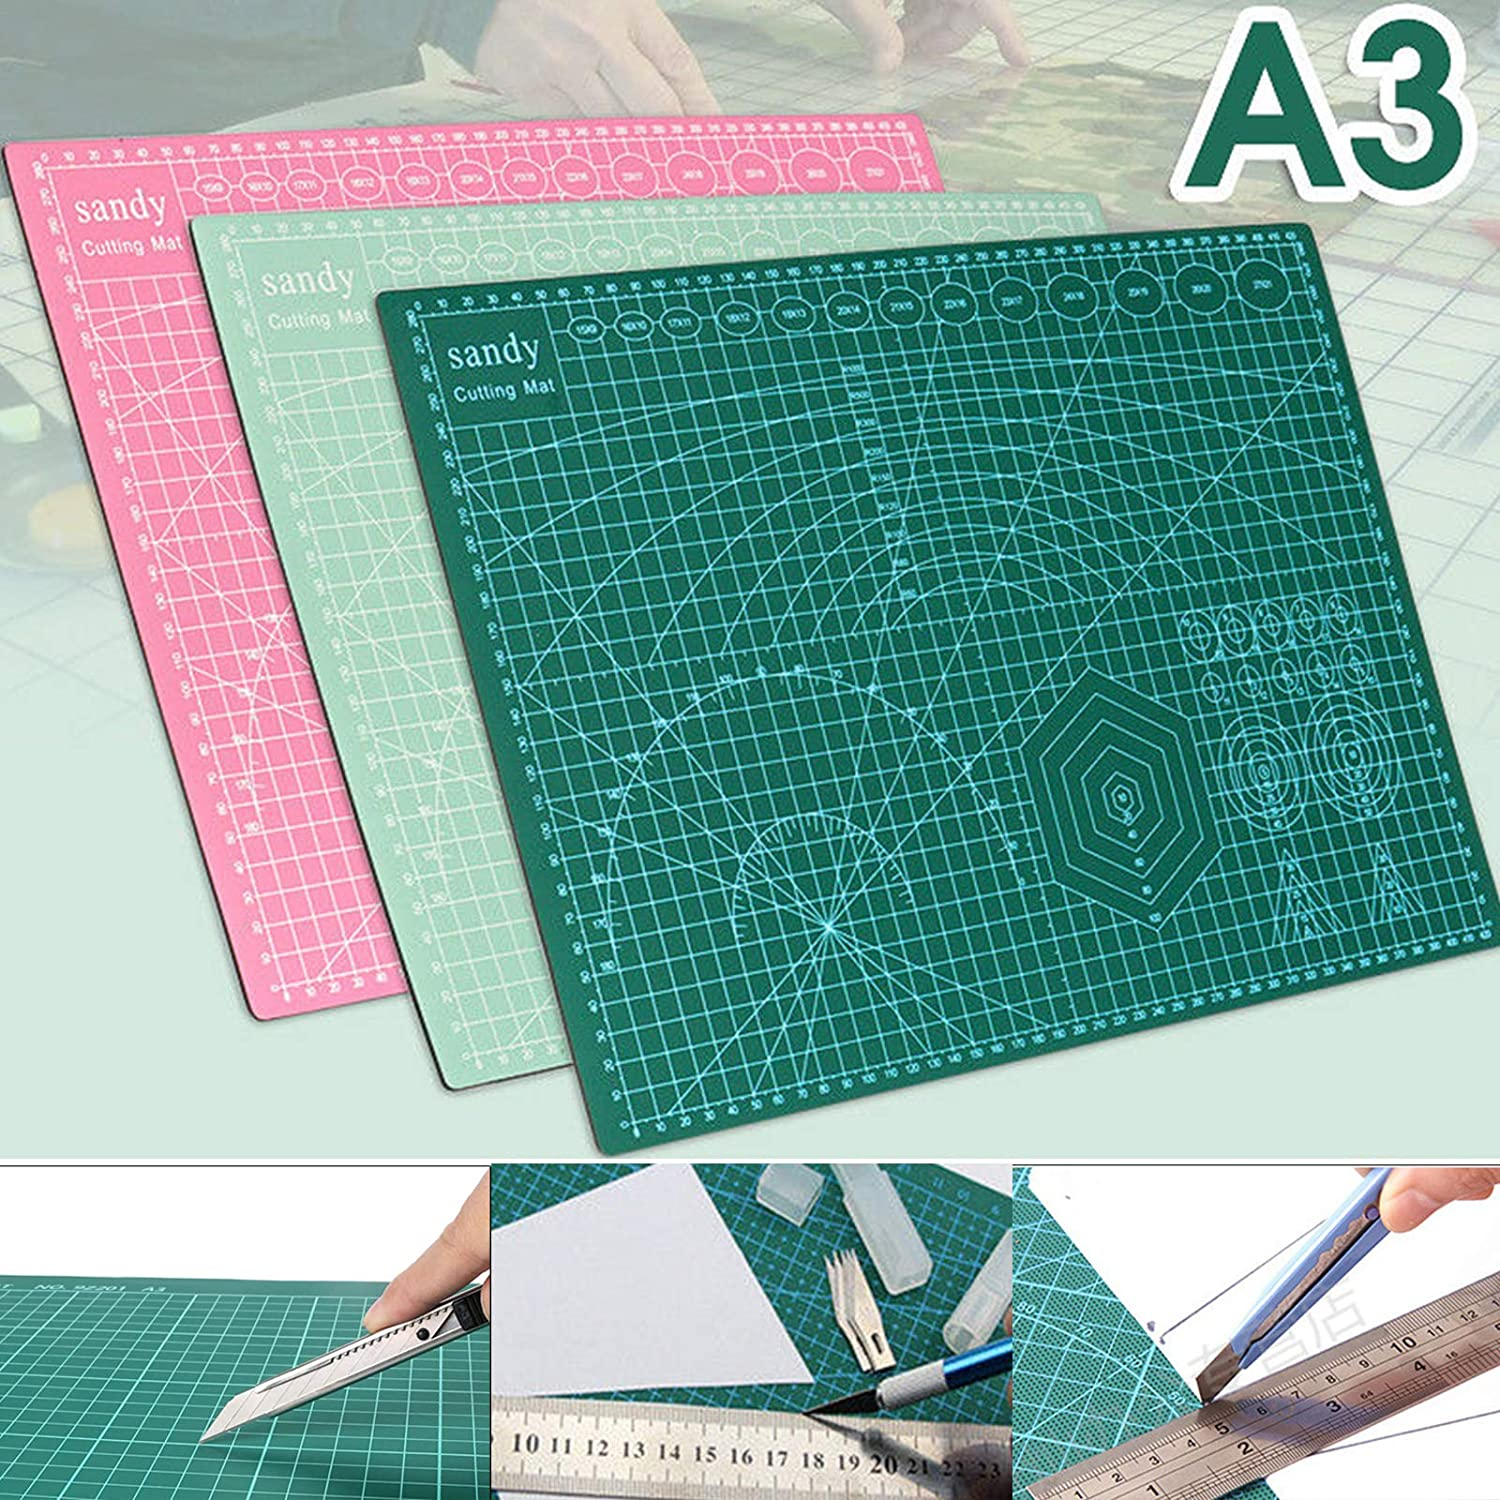 DHOUTDOORS A3 Cutting Mat Self Healing Non Slip Craft Quilting Printed Grid Lines Mint Green